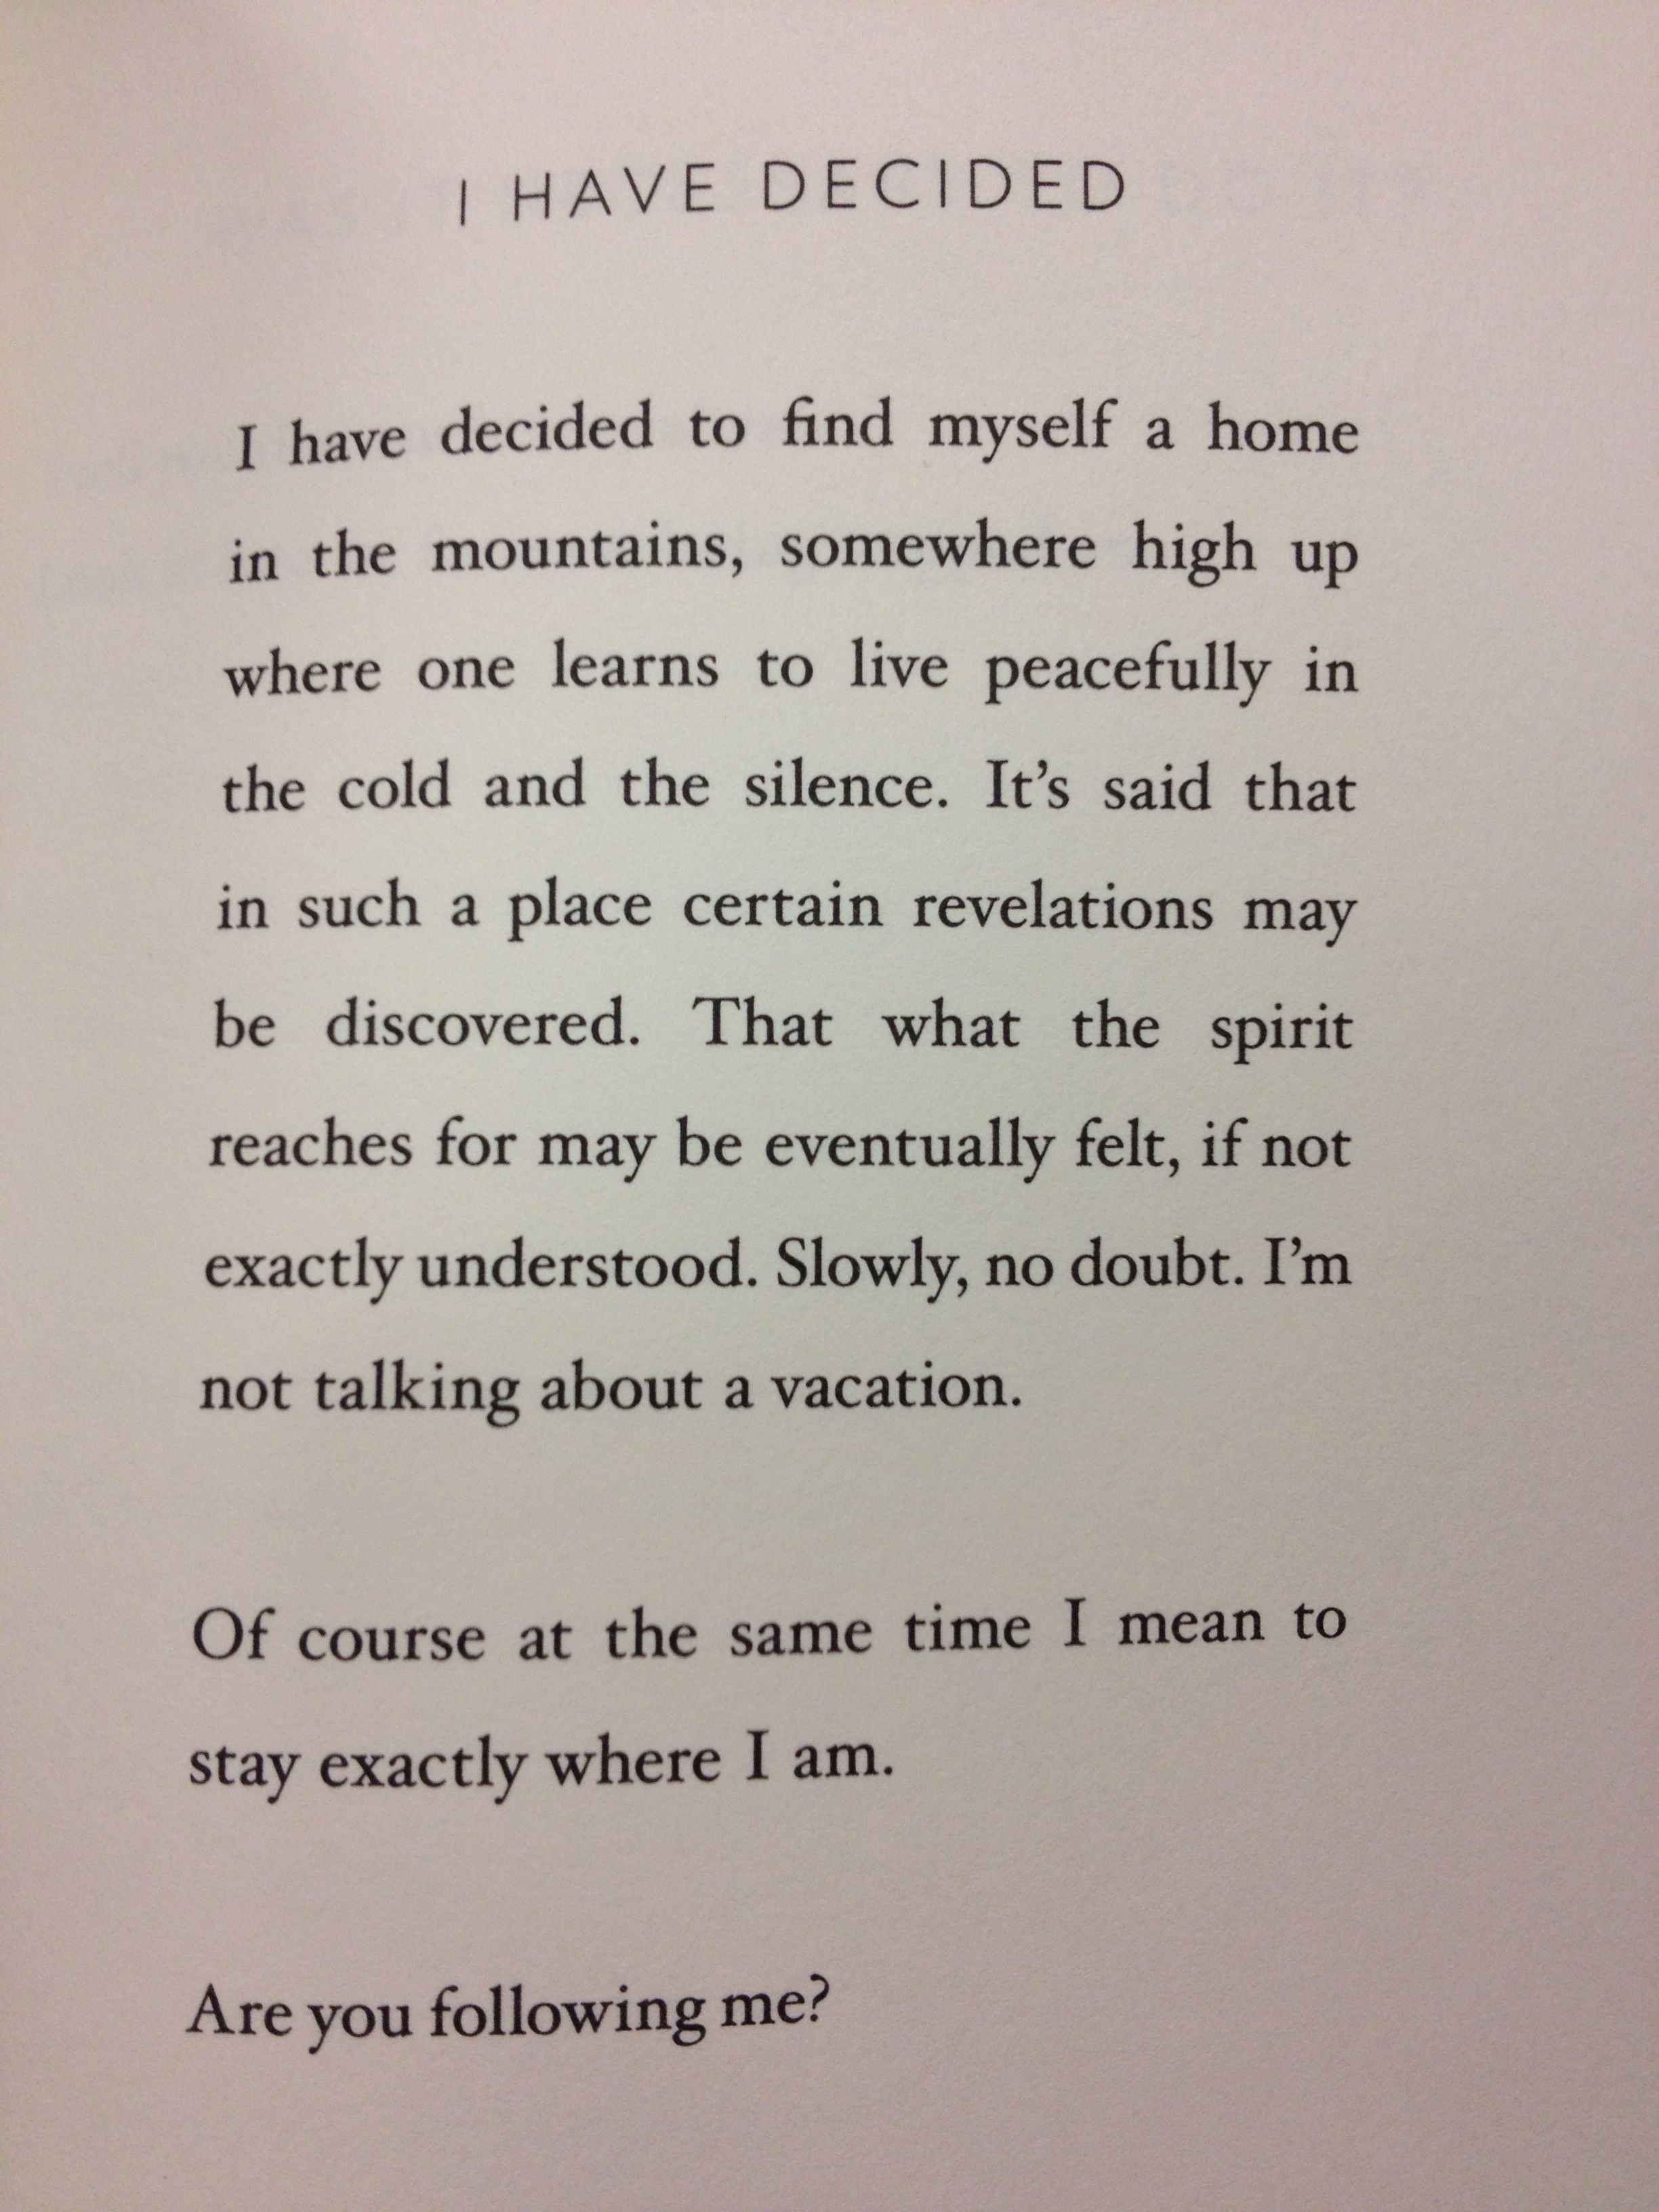 I Have Decided by mary oliver | I have decided to find